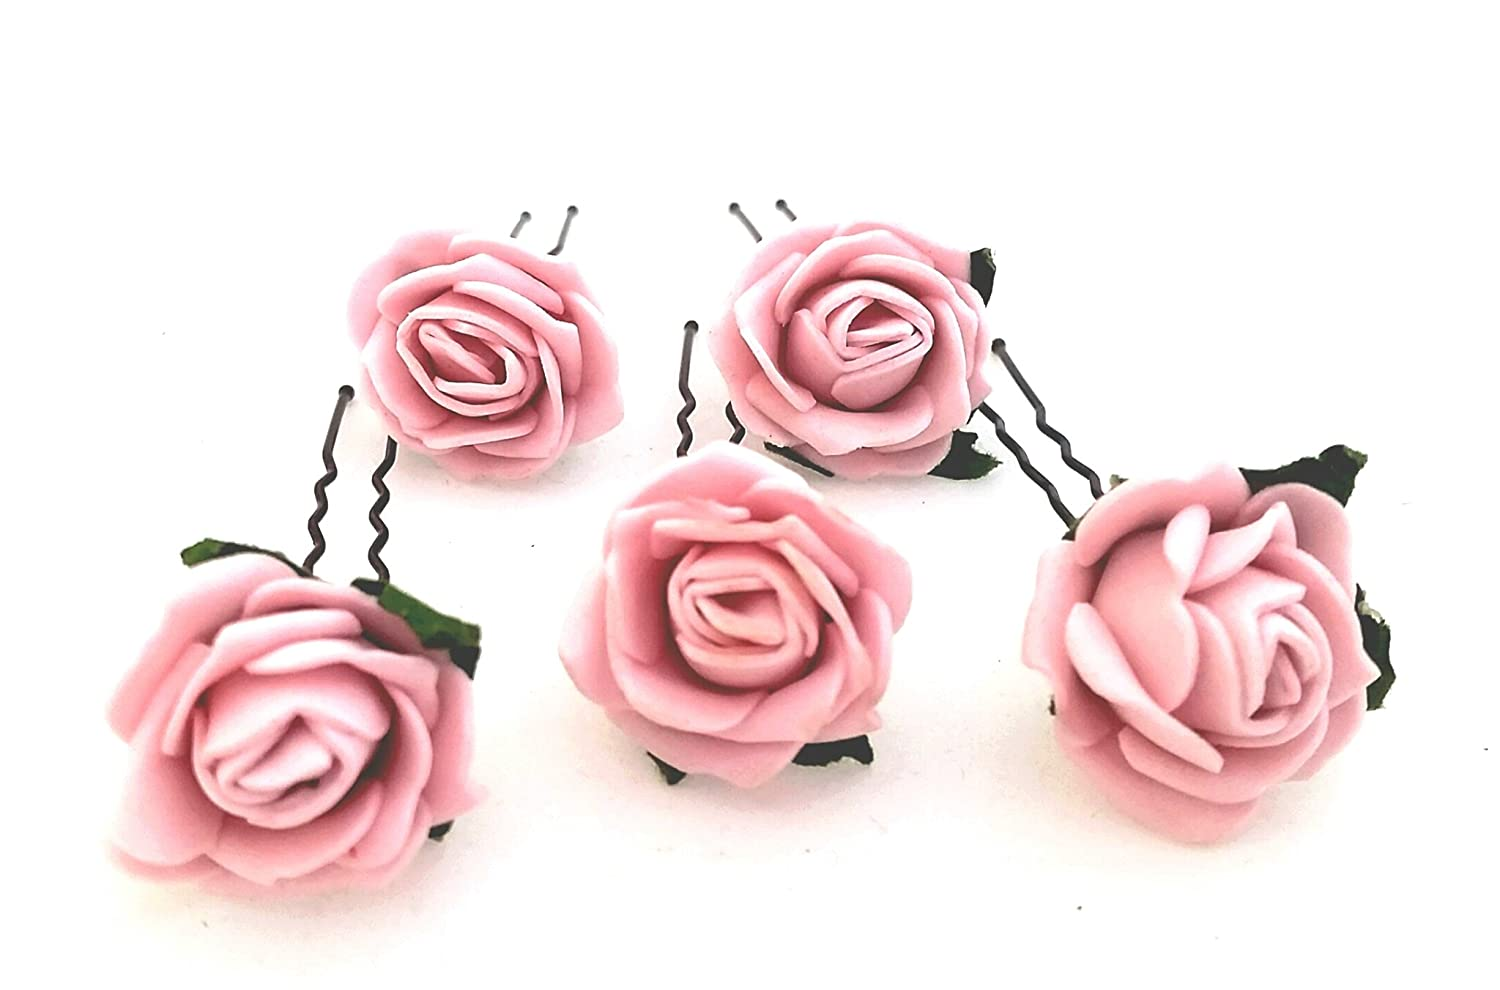 Fabulous Fascinators 5 Mini Vintage Pink Roses Artificial Hair Flower Pins Hand Made in UK